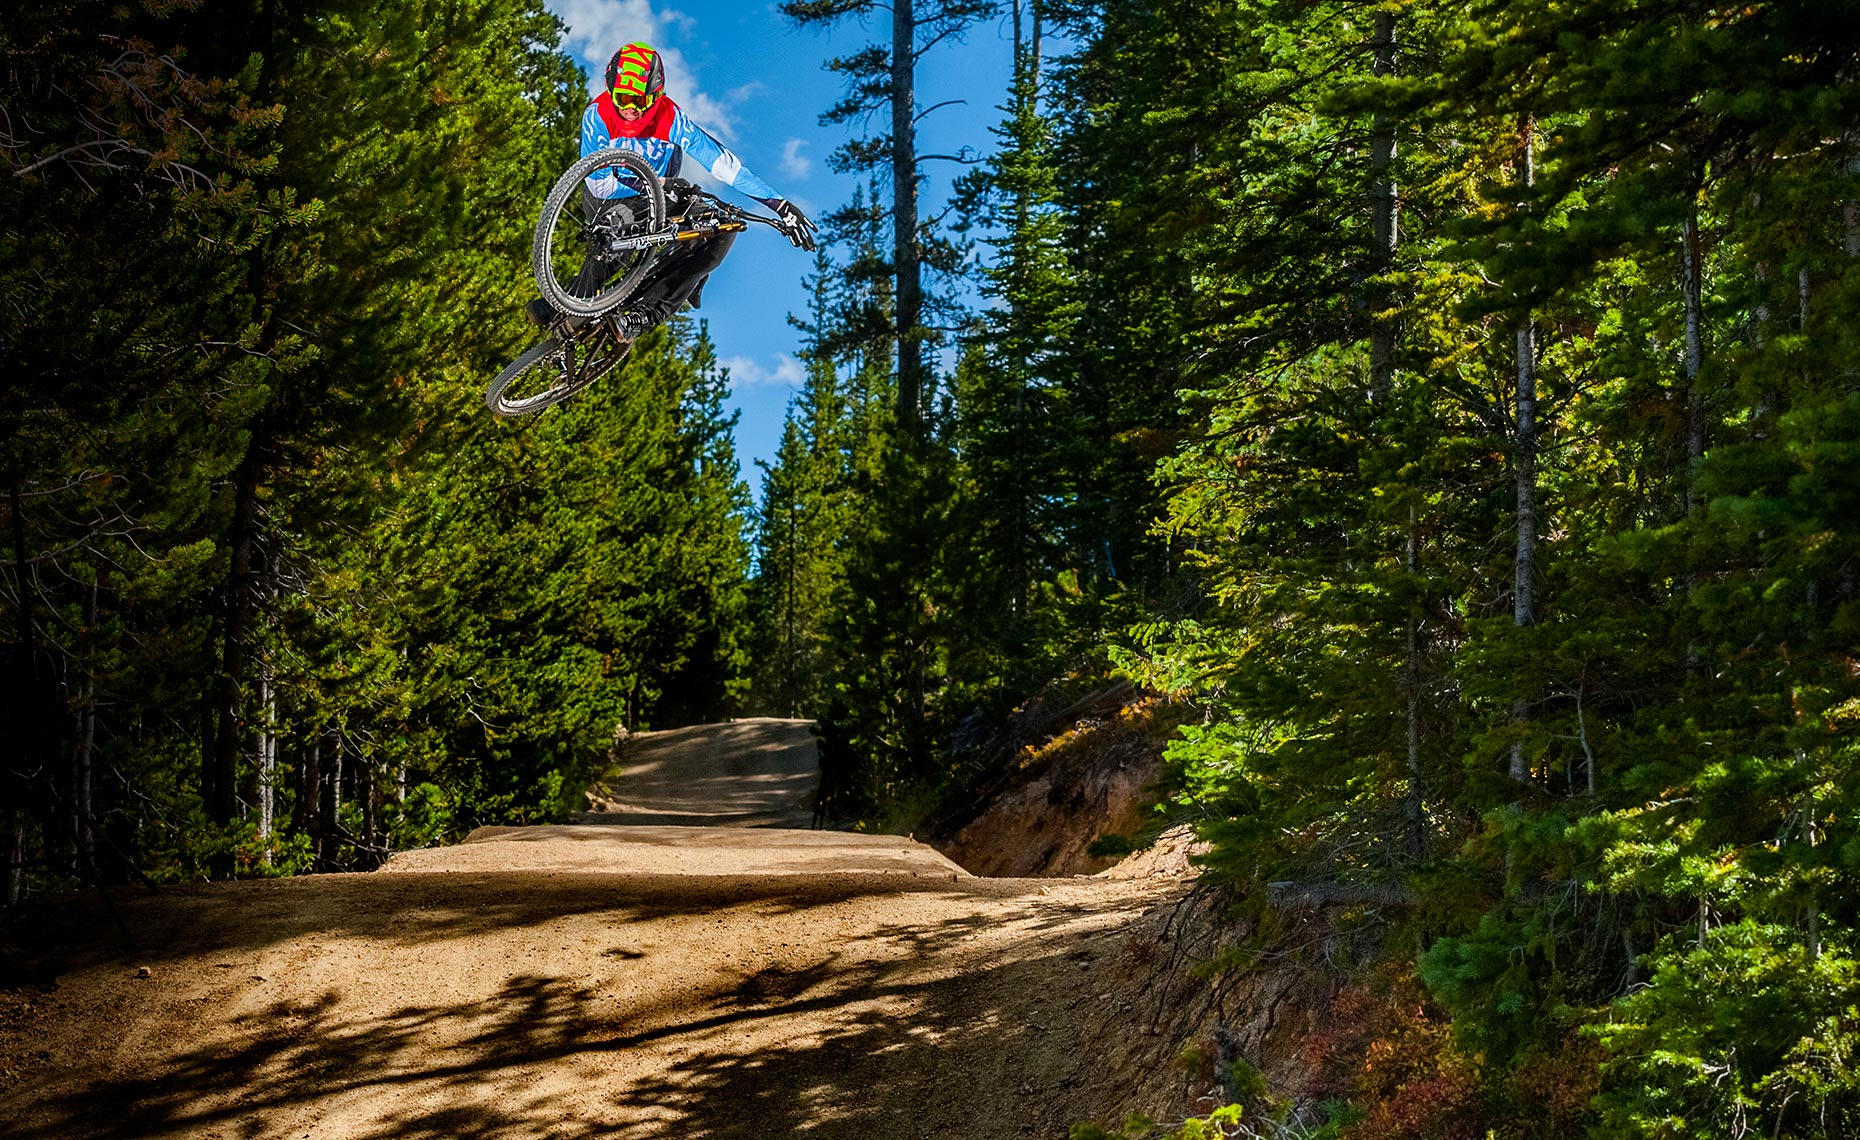 2606-Dillon-Lemarr-Trestle-Bike-Park-Chris-Wellhausen-06-RGB